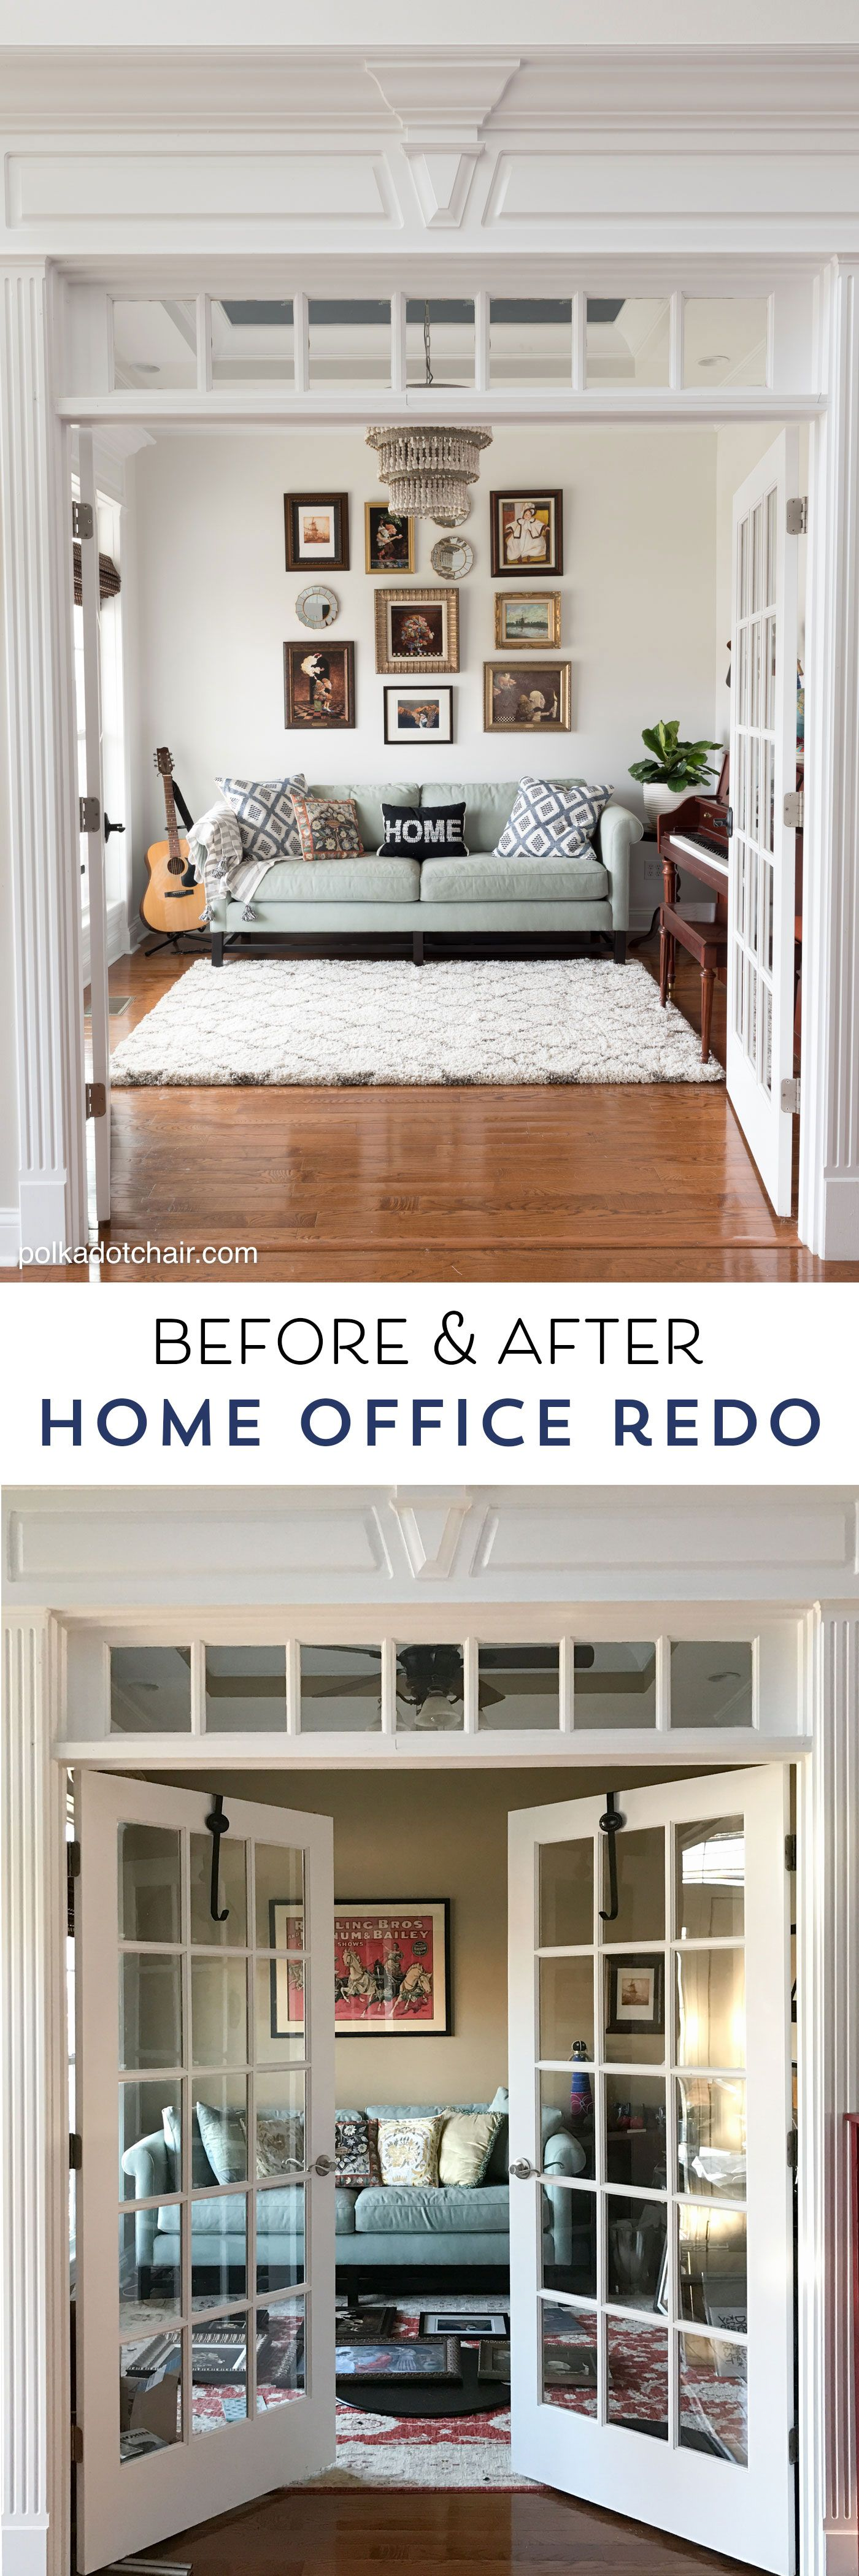 Before u after simple room refresh with lots of diy decorating ideas